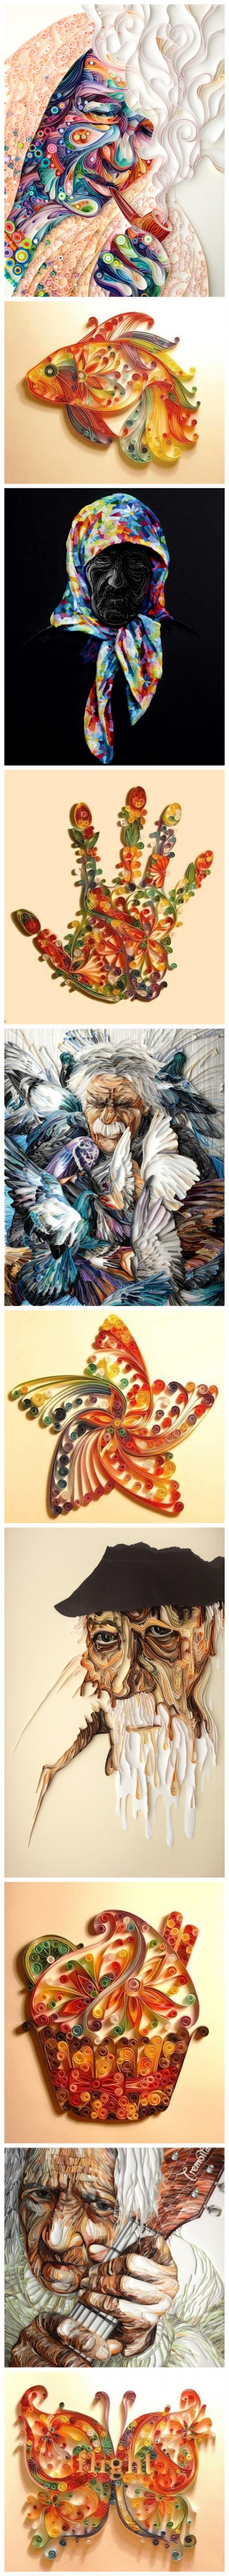 Amazing Paper Quilling Artworks 2